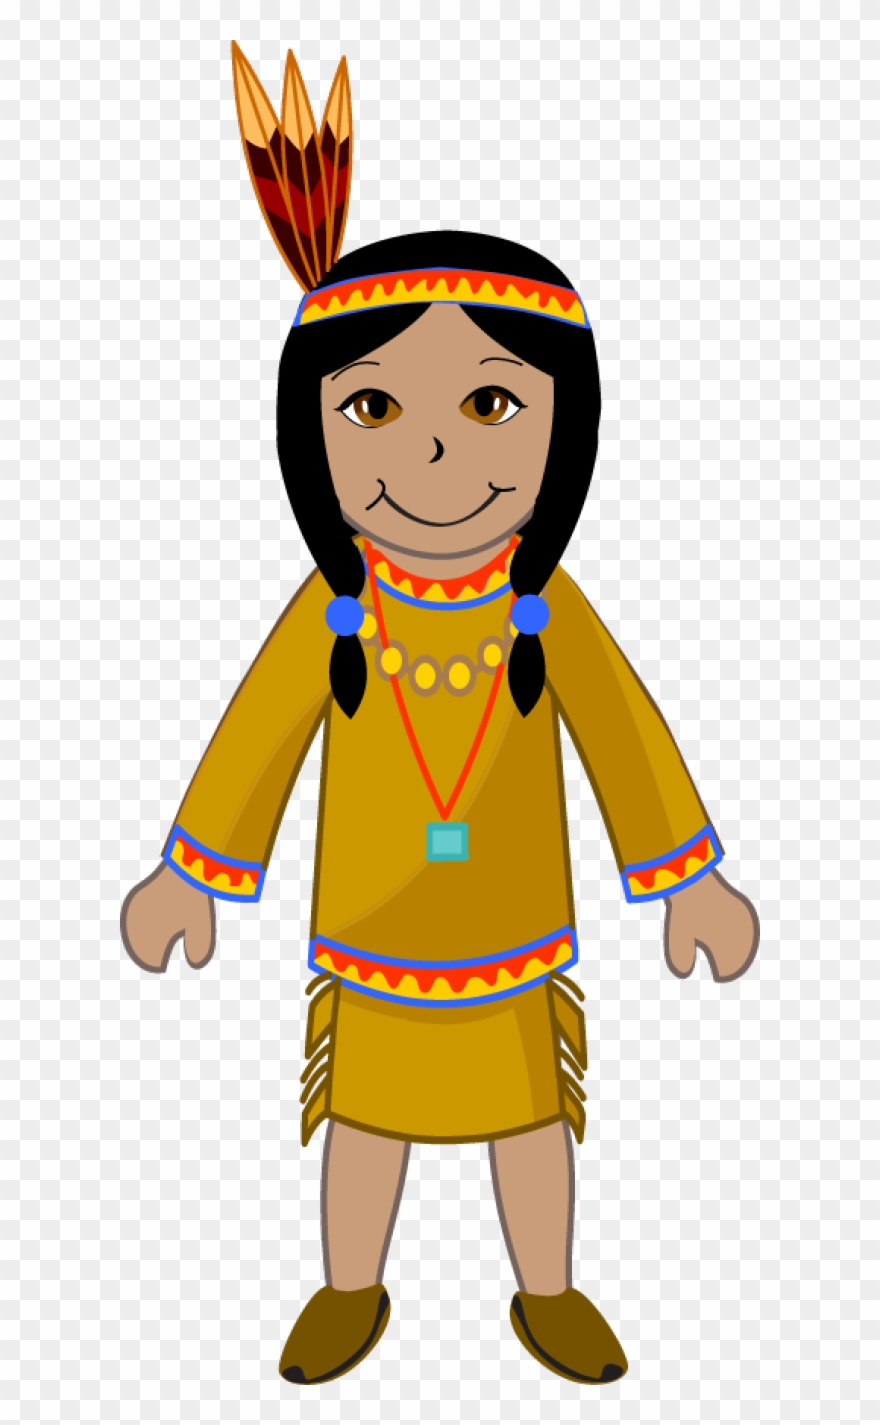 American Indians Png Image.